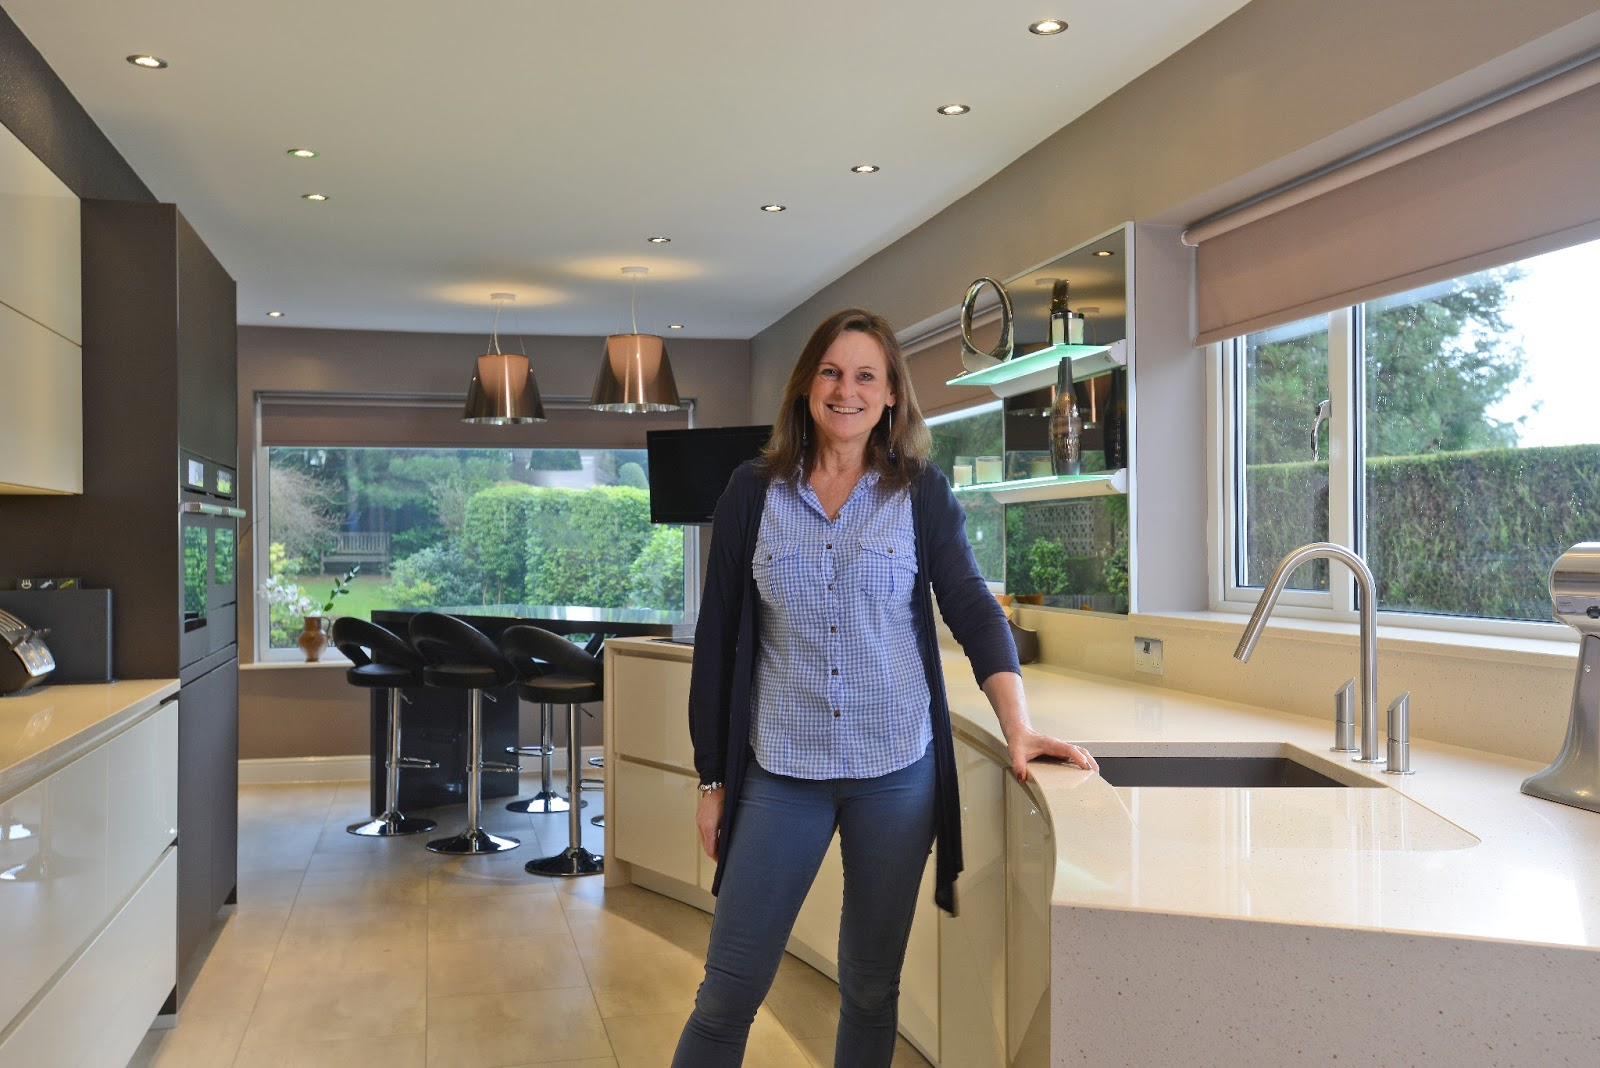 Superior Mr U0026 Mrs Page   KBSA Award Winning Kitchen Design 2013 By Diane Berry  Kitchens Part 22